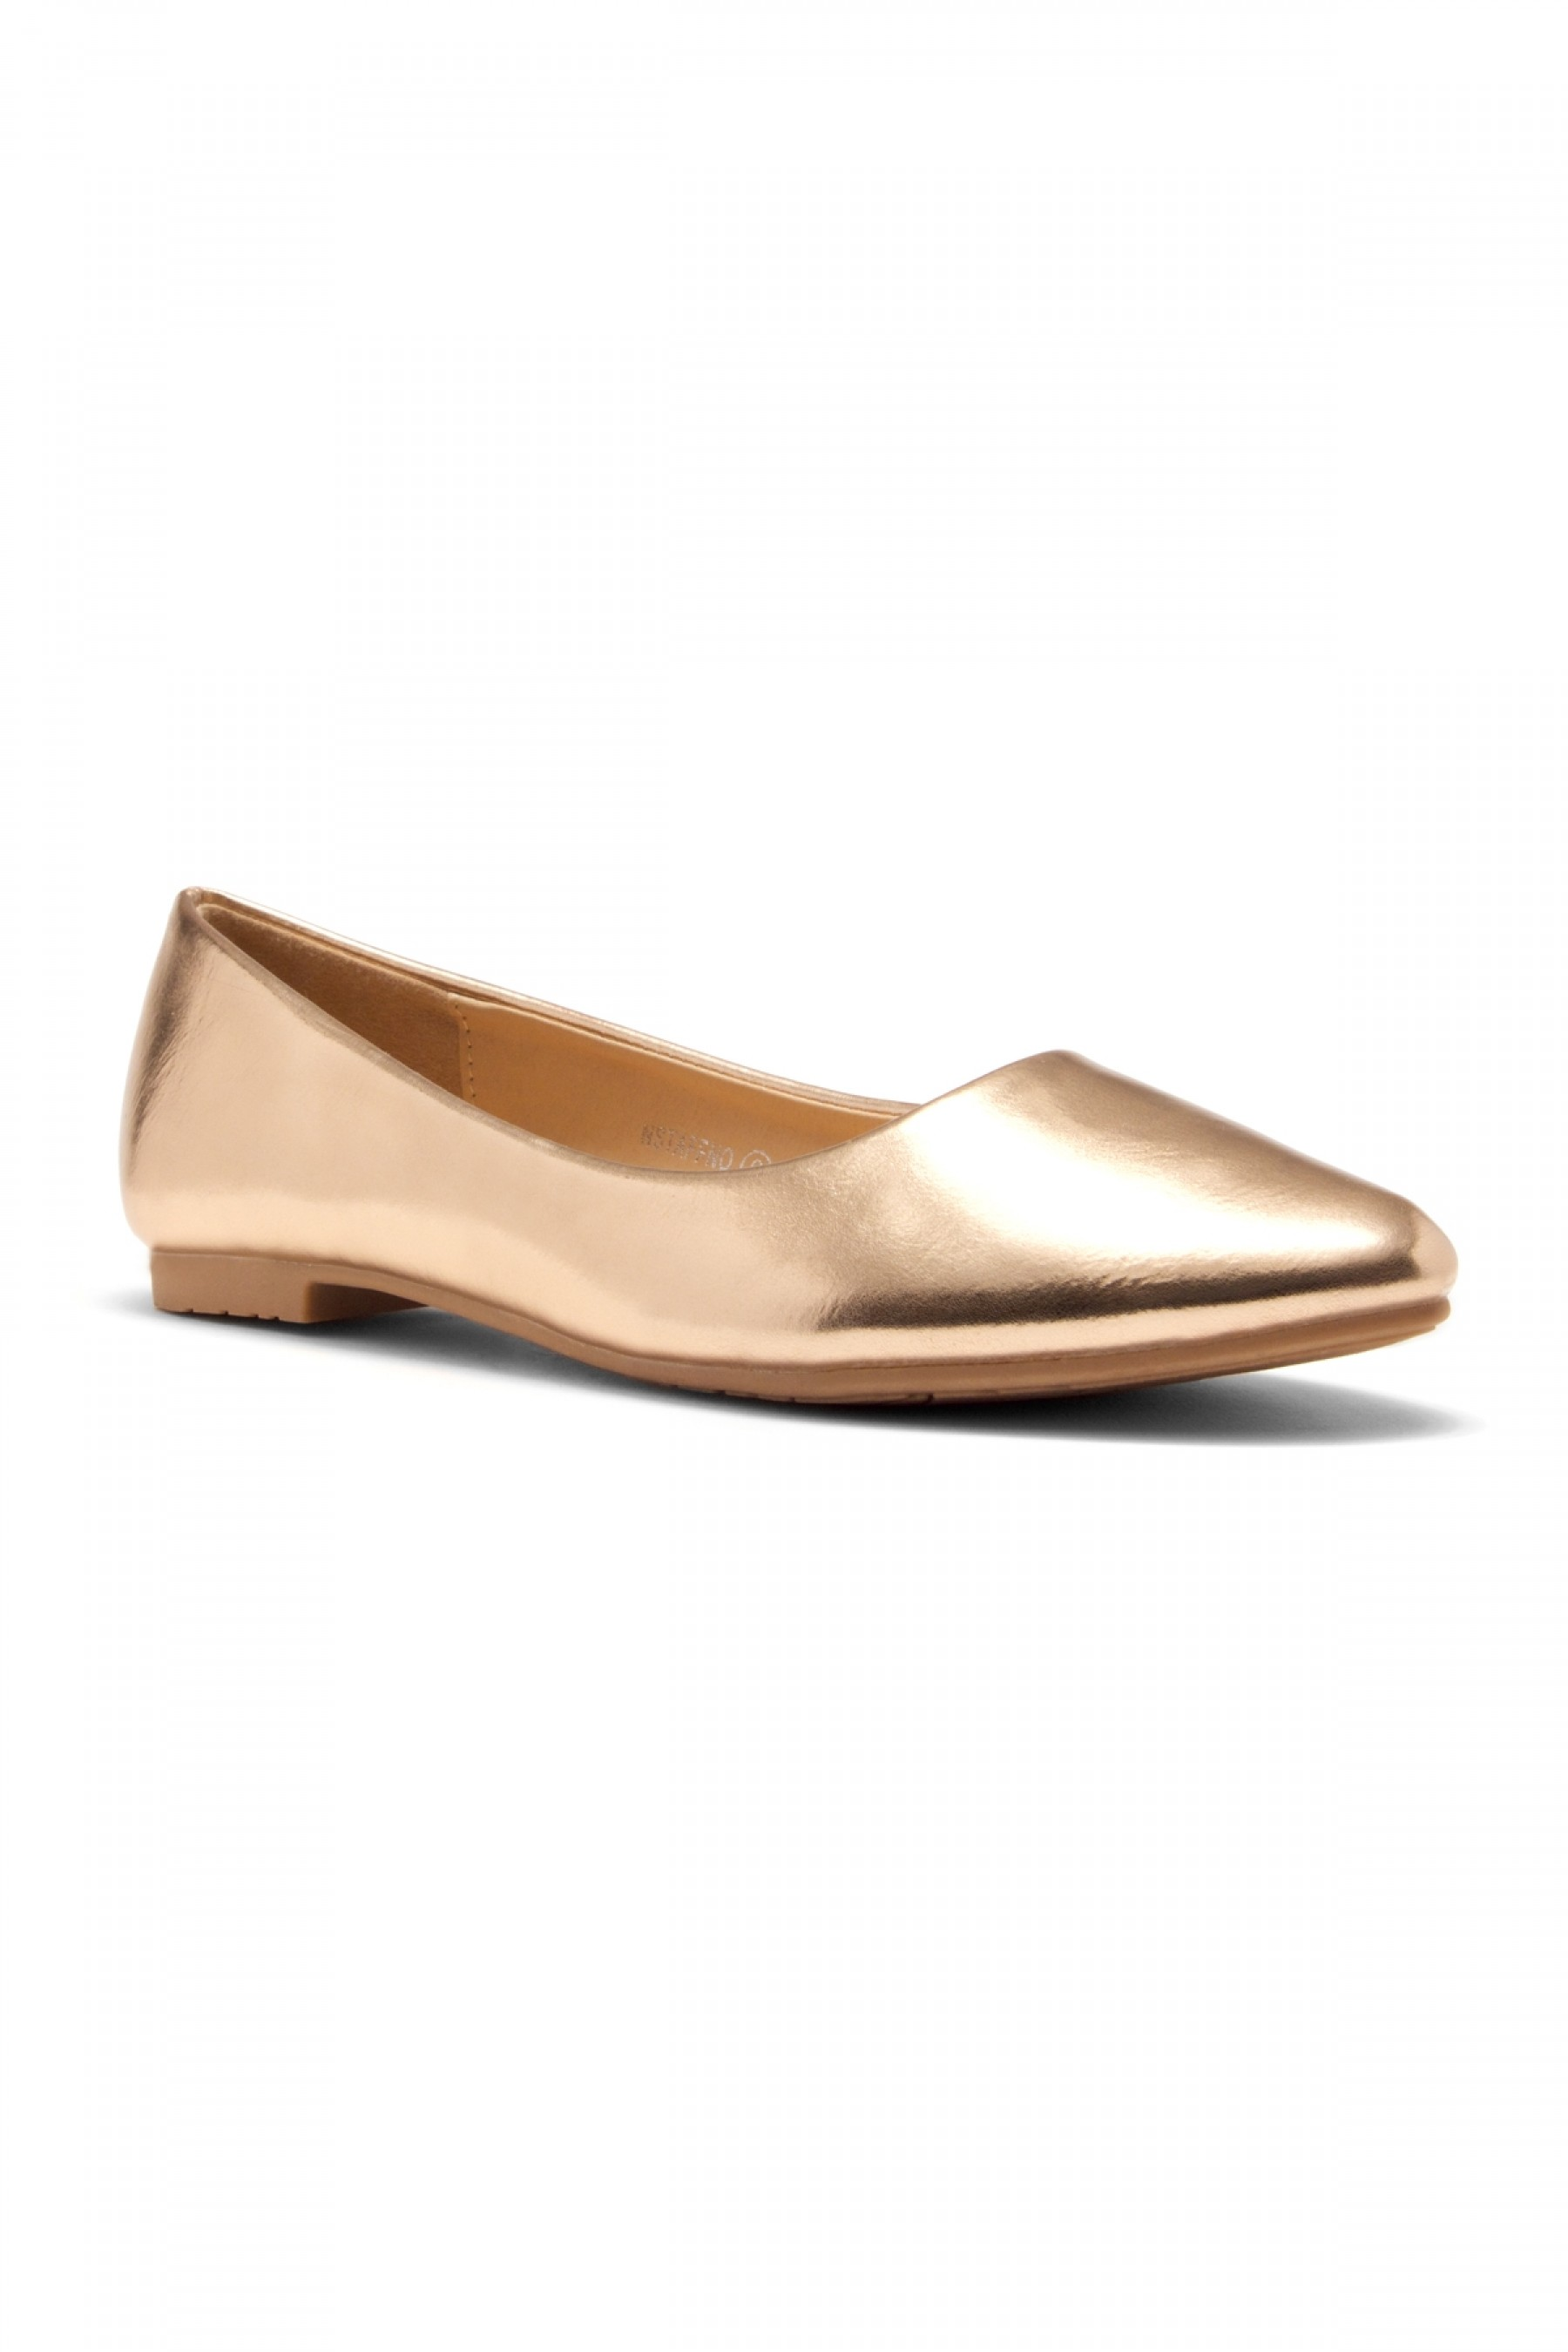 HerStyle Women's Manmade Nstaffno Simple Faux Suede Pointy Toe Flats (Rose Gold)